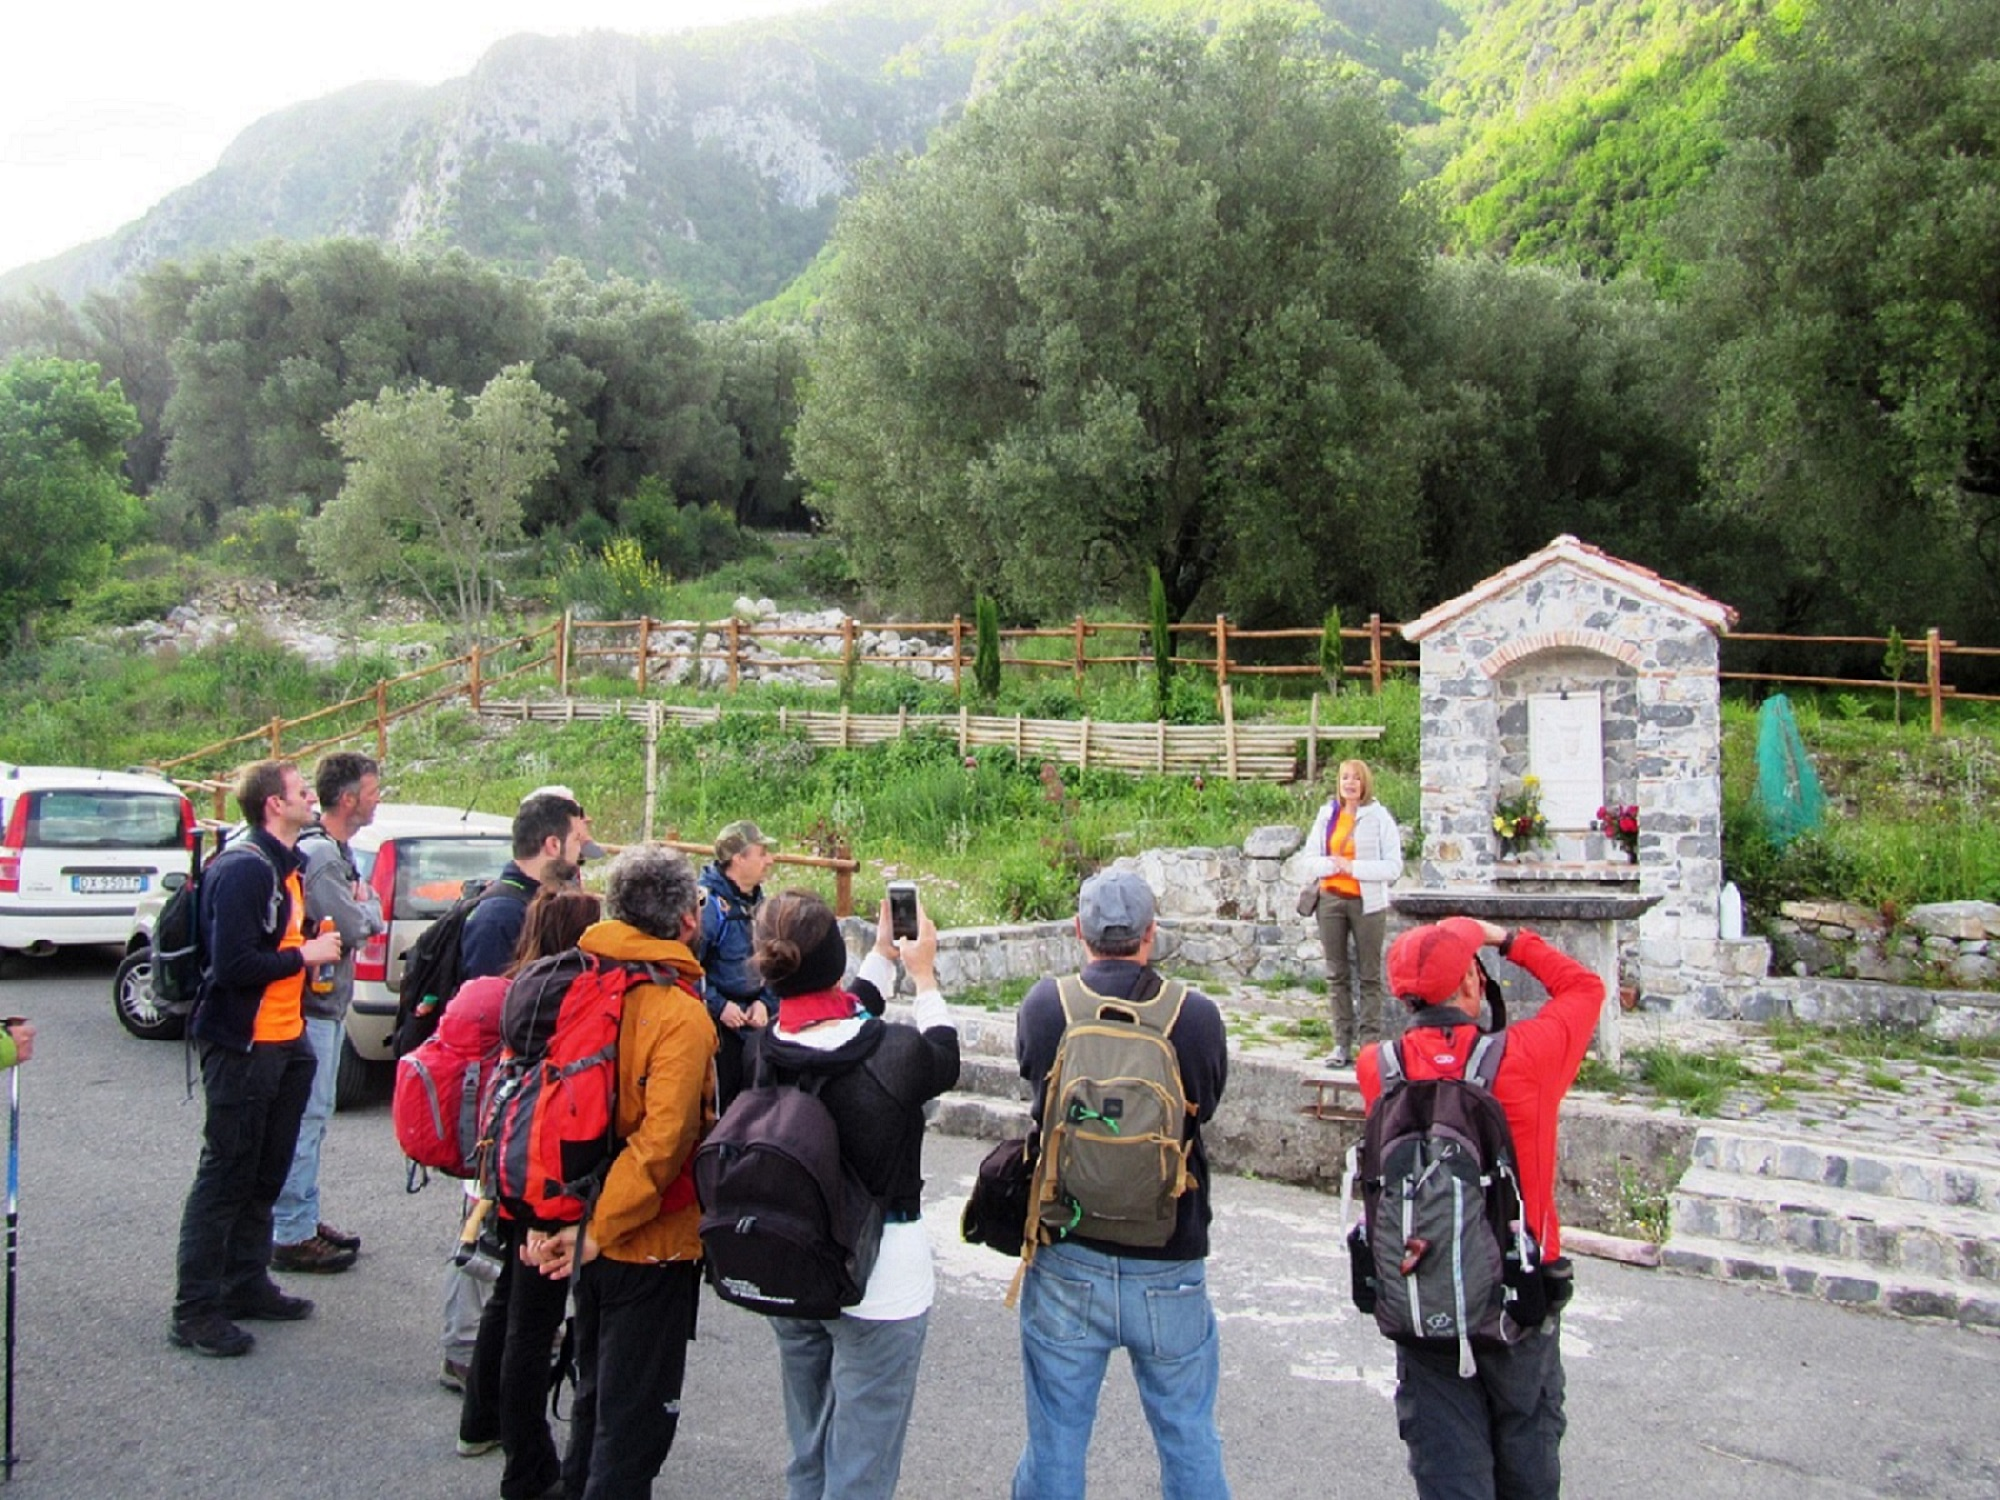 cilento trekking in the mountains: the monte bulgheria